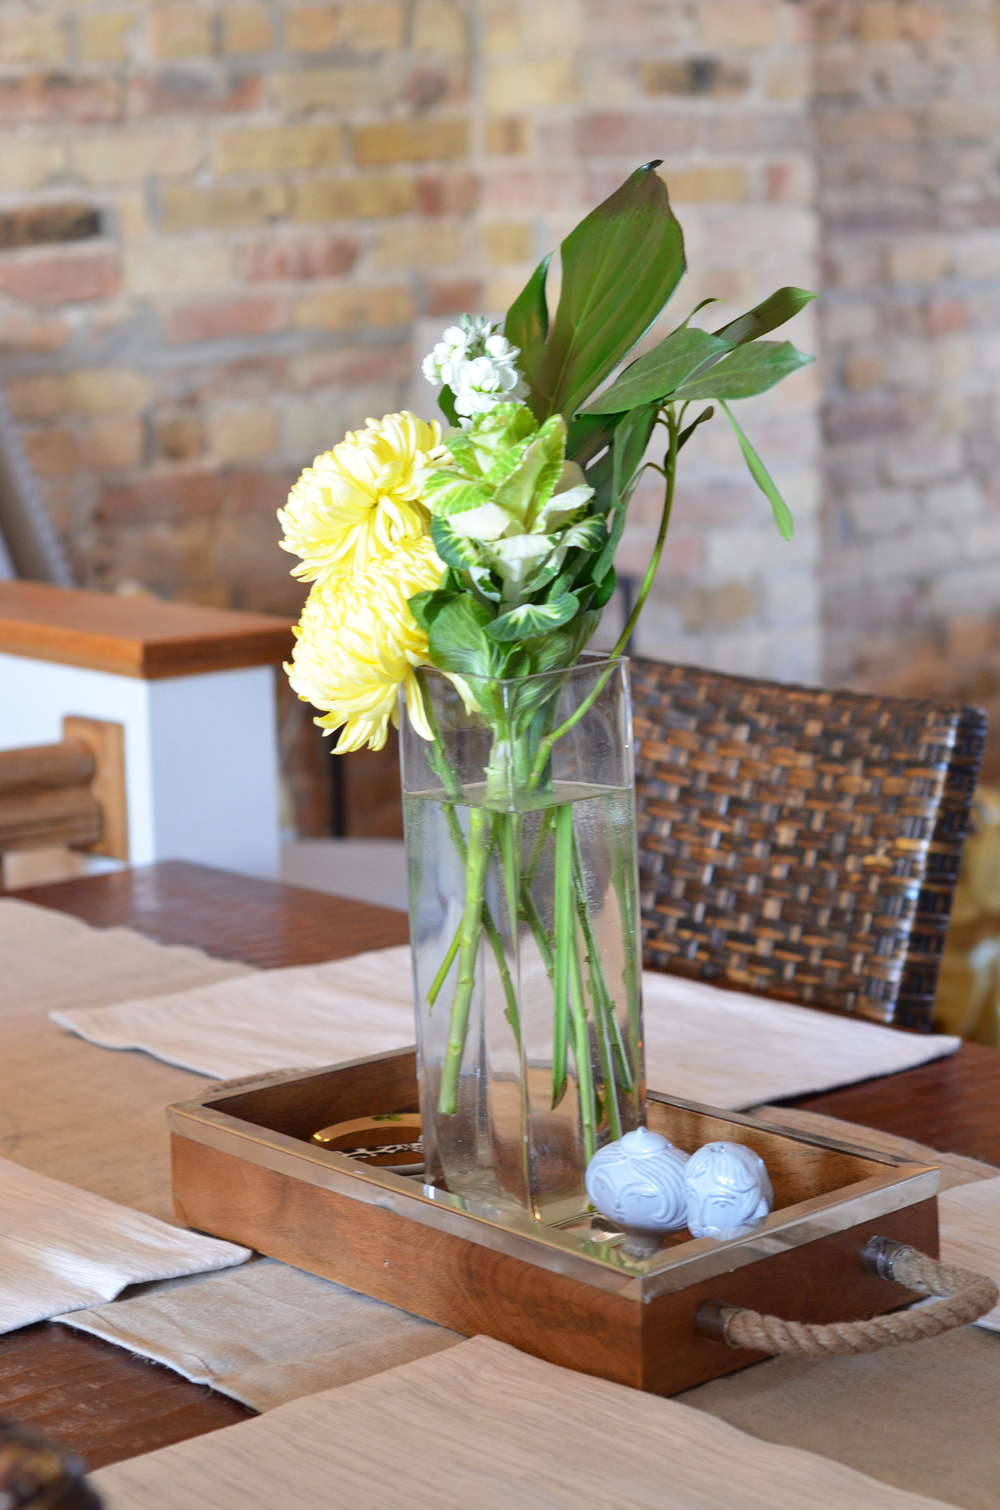 Floral centerpiece, a pop of yellow nicely compliments the wood table.